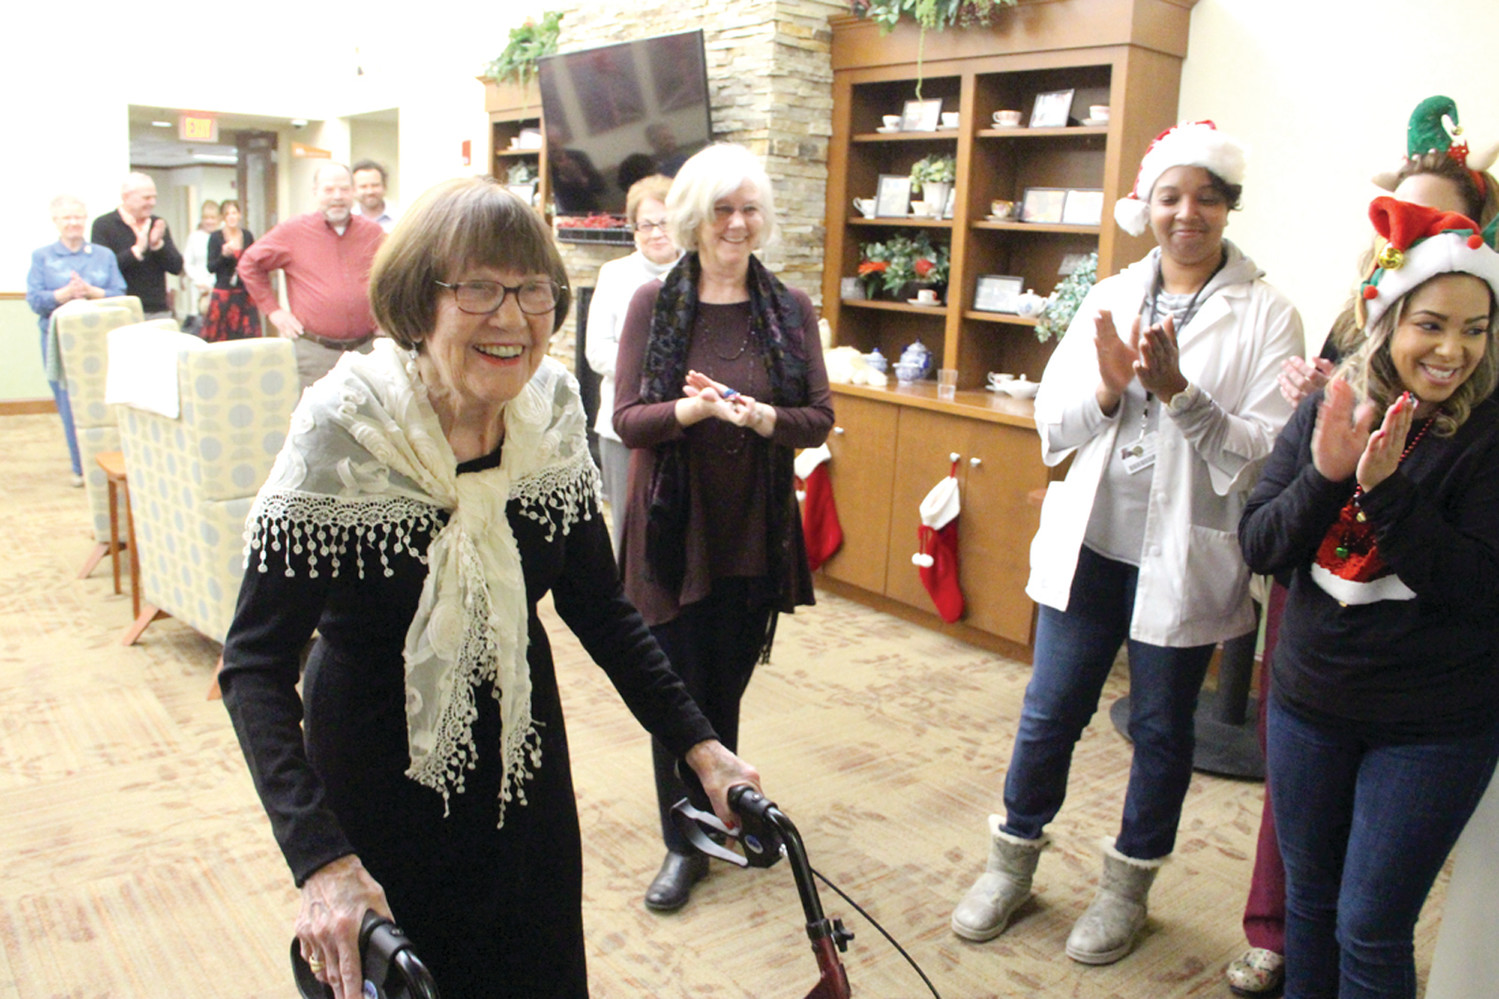 READY FOR A PARTY: Ester Sarafian makes a grand entrance to the applause of Scandinavian Home staff and family members at Fridays party celebrating her 100th birthday.